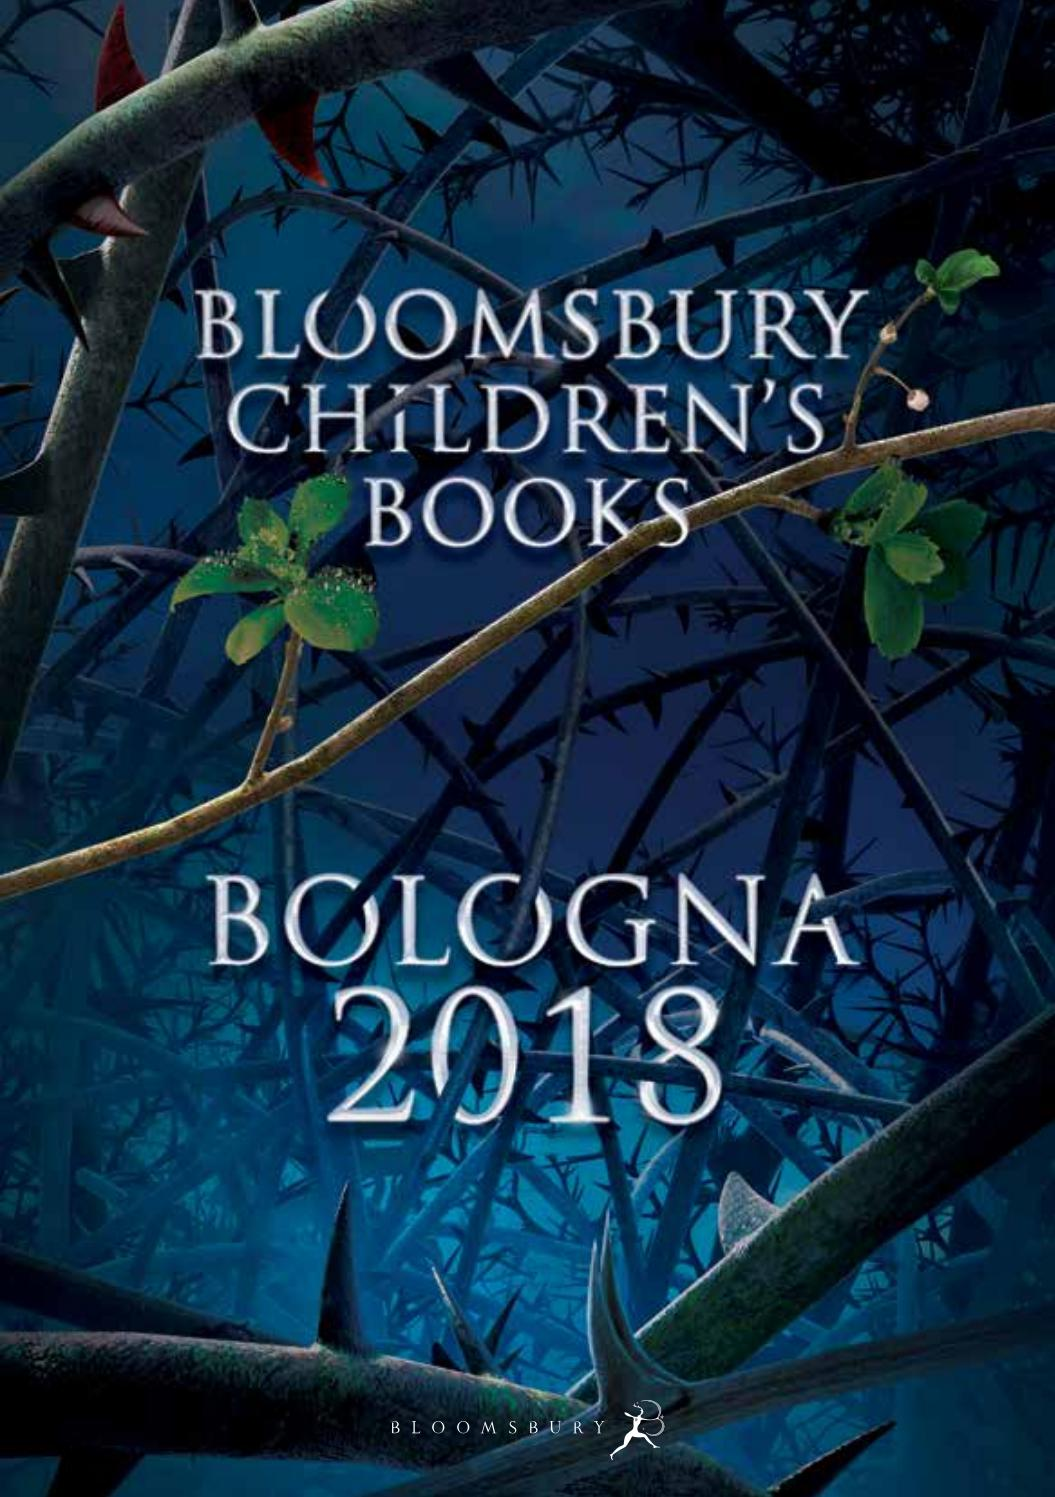 db329246ce3bd Bloomsbury Children s Books Bologna 2018 by Bloomsbury Publishing ...